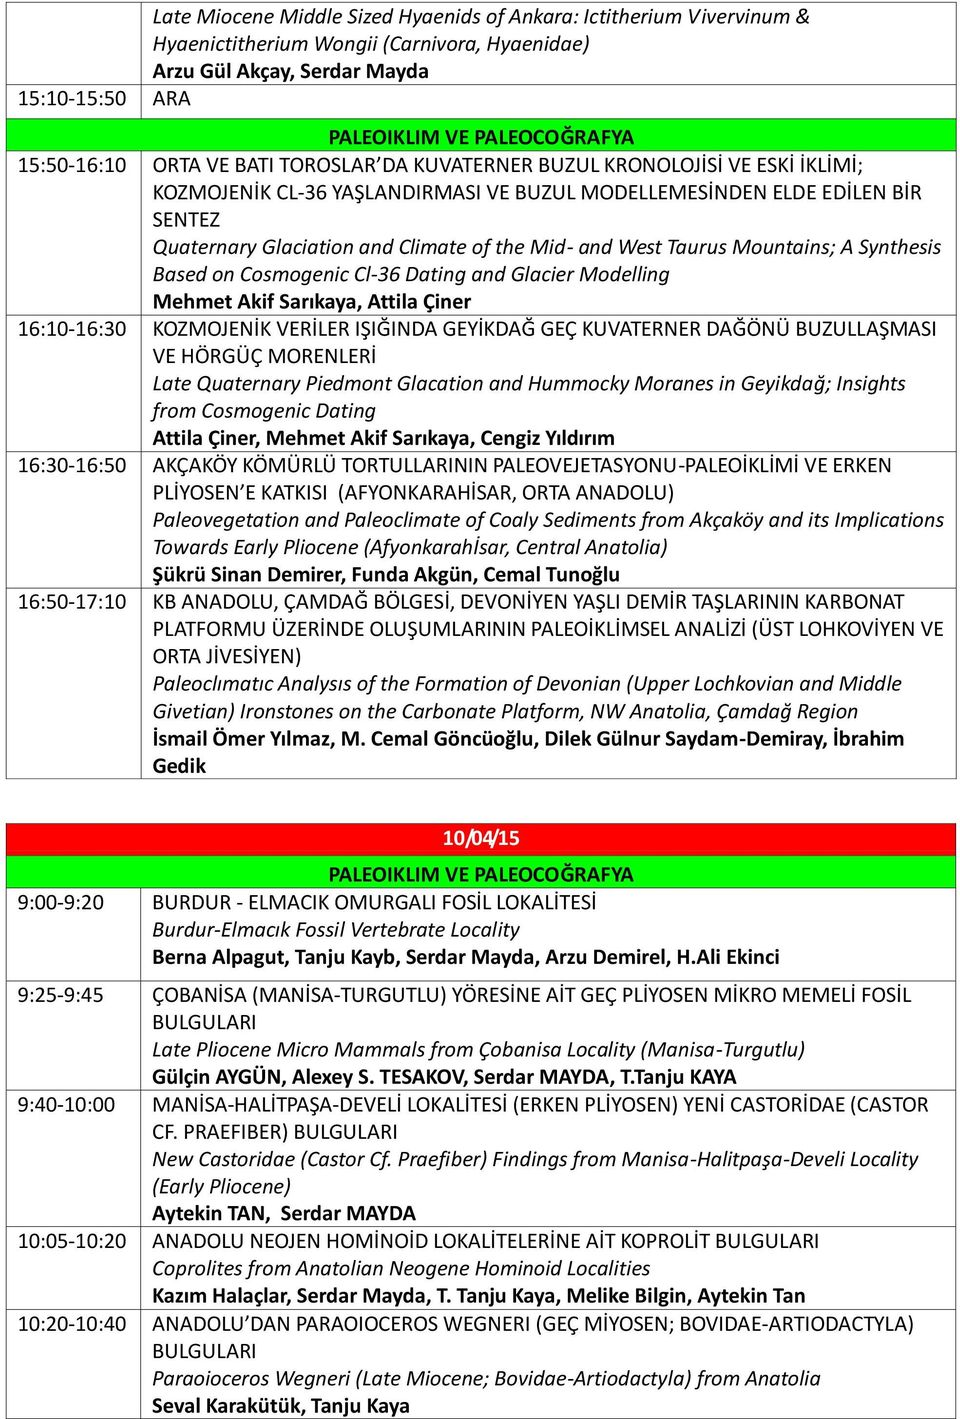 the Mid- and West Taurus Mountains; A Synthesis Based on Cosmogenic Cl-36 Dating and Glacier Modelling Mehmet Akif Sarıkaya, Attila Çiner 16:10-16:30 KOZMOJENİK VERİLER IŞIĞINDA GEYİKDAĞ GEÇ